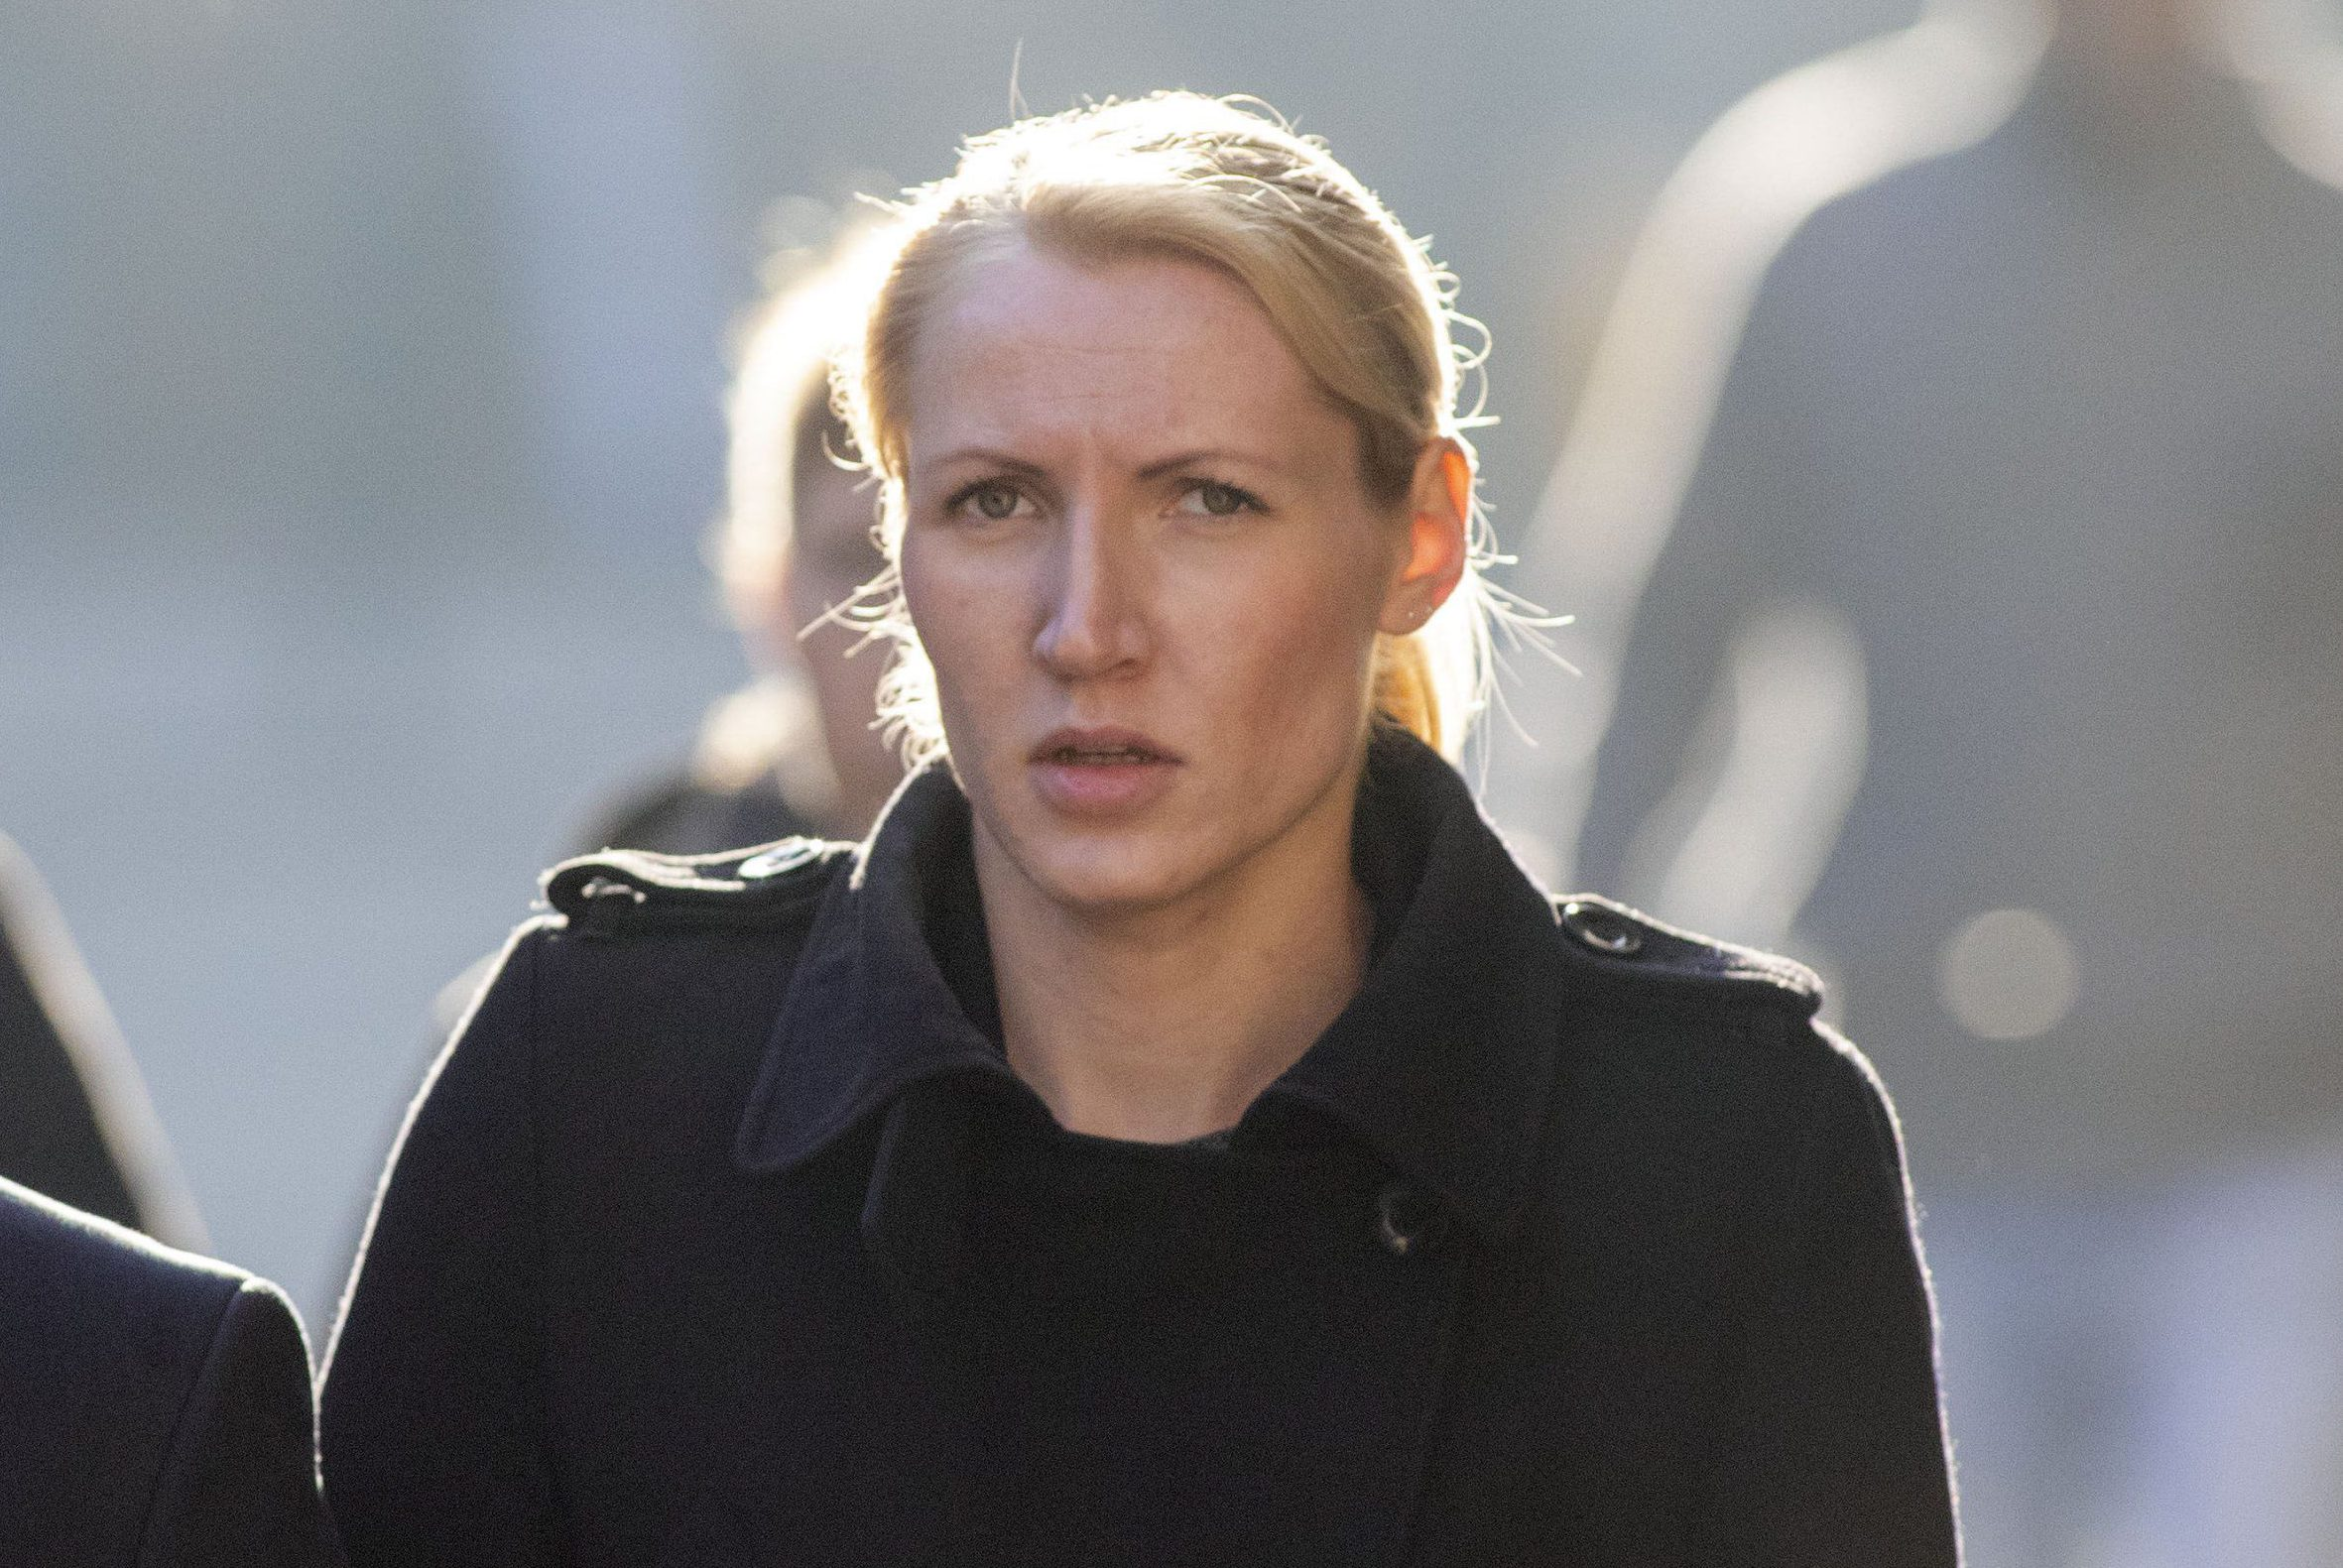 Eleanor Wilson arrives at Bristol Crown Court where she is on trial accused of having drink-fuelled sexual intercourse with the teenager on a British Airways flight home from an overseas camping trip in August 2015. PRESS ASSOCIATION Photo. Issue date: Wednesday October 10, 2018. See PA story COURTS Teacher. Photo credit should read: Steve Parsons/PA Wire